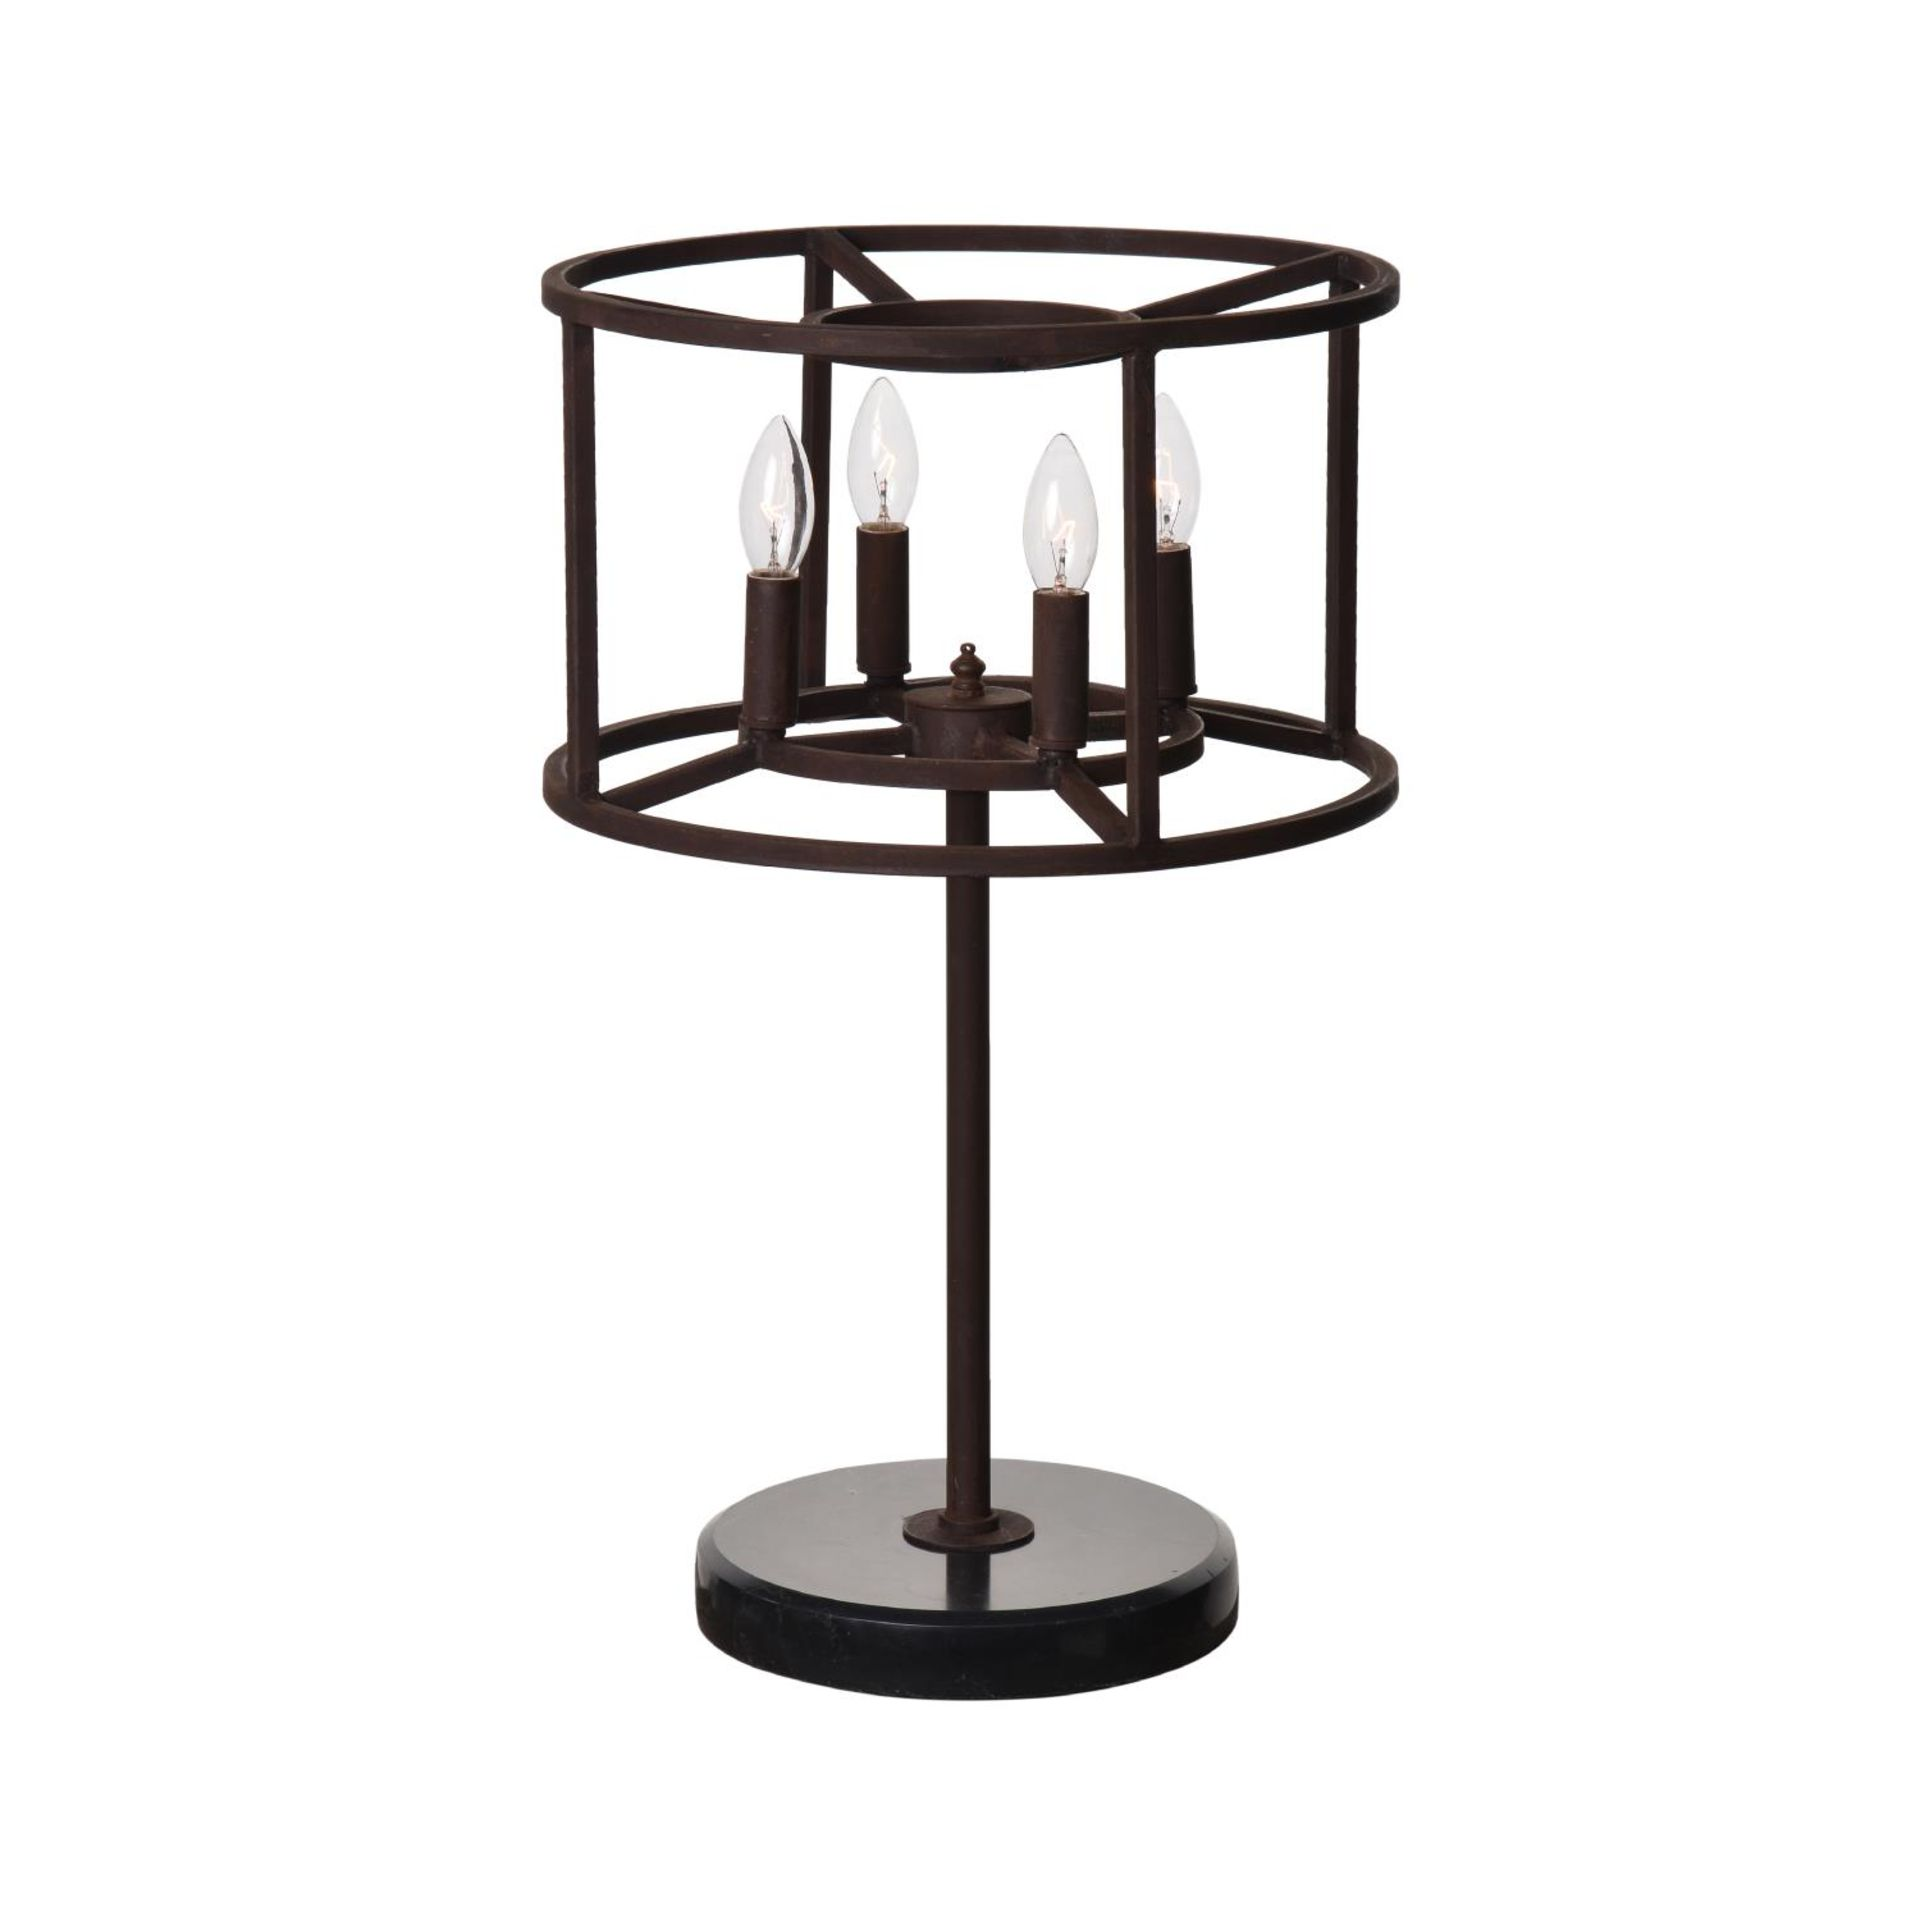 A CROWN TABLE LAMP - ANTIQUE RUST 40cm x 40cm x 62cm (rrp £550) EU wired